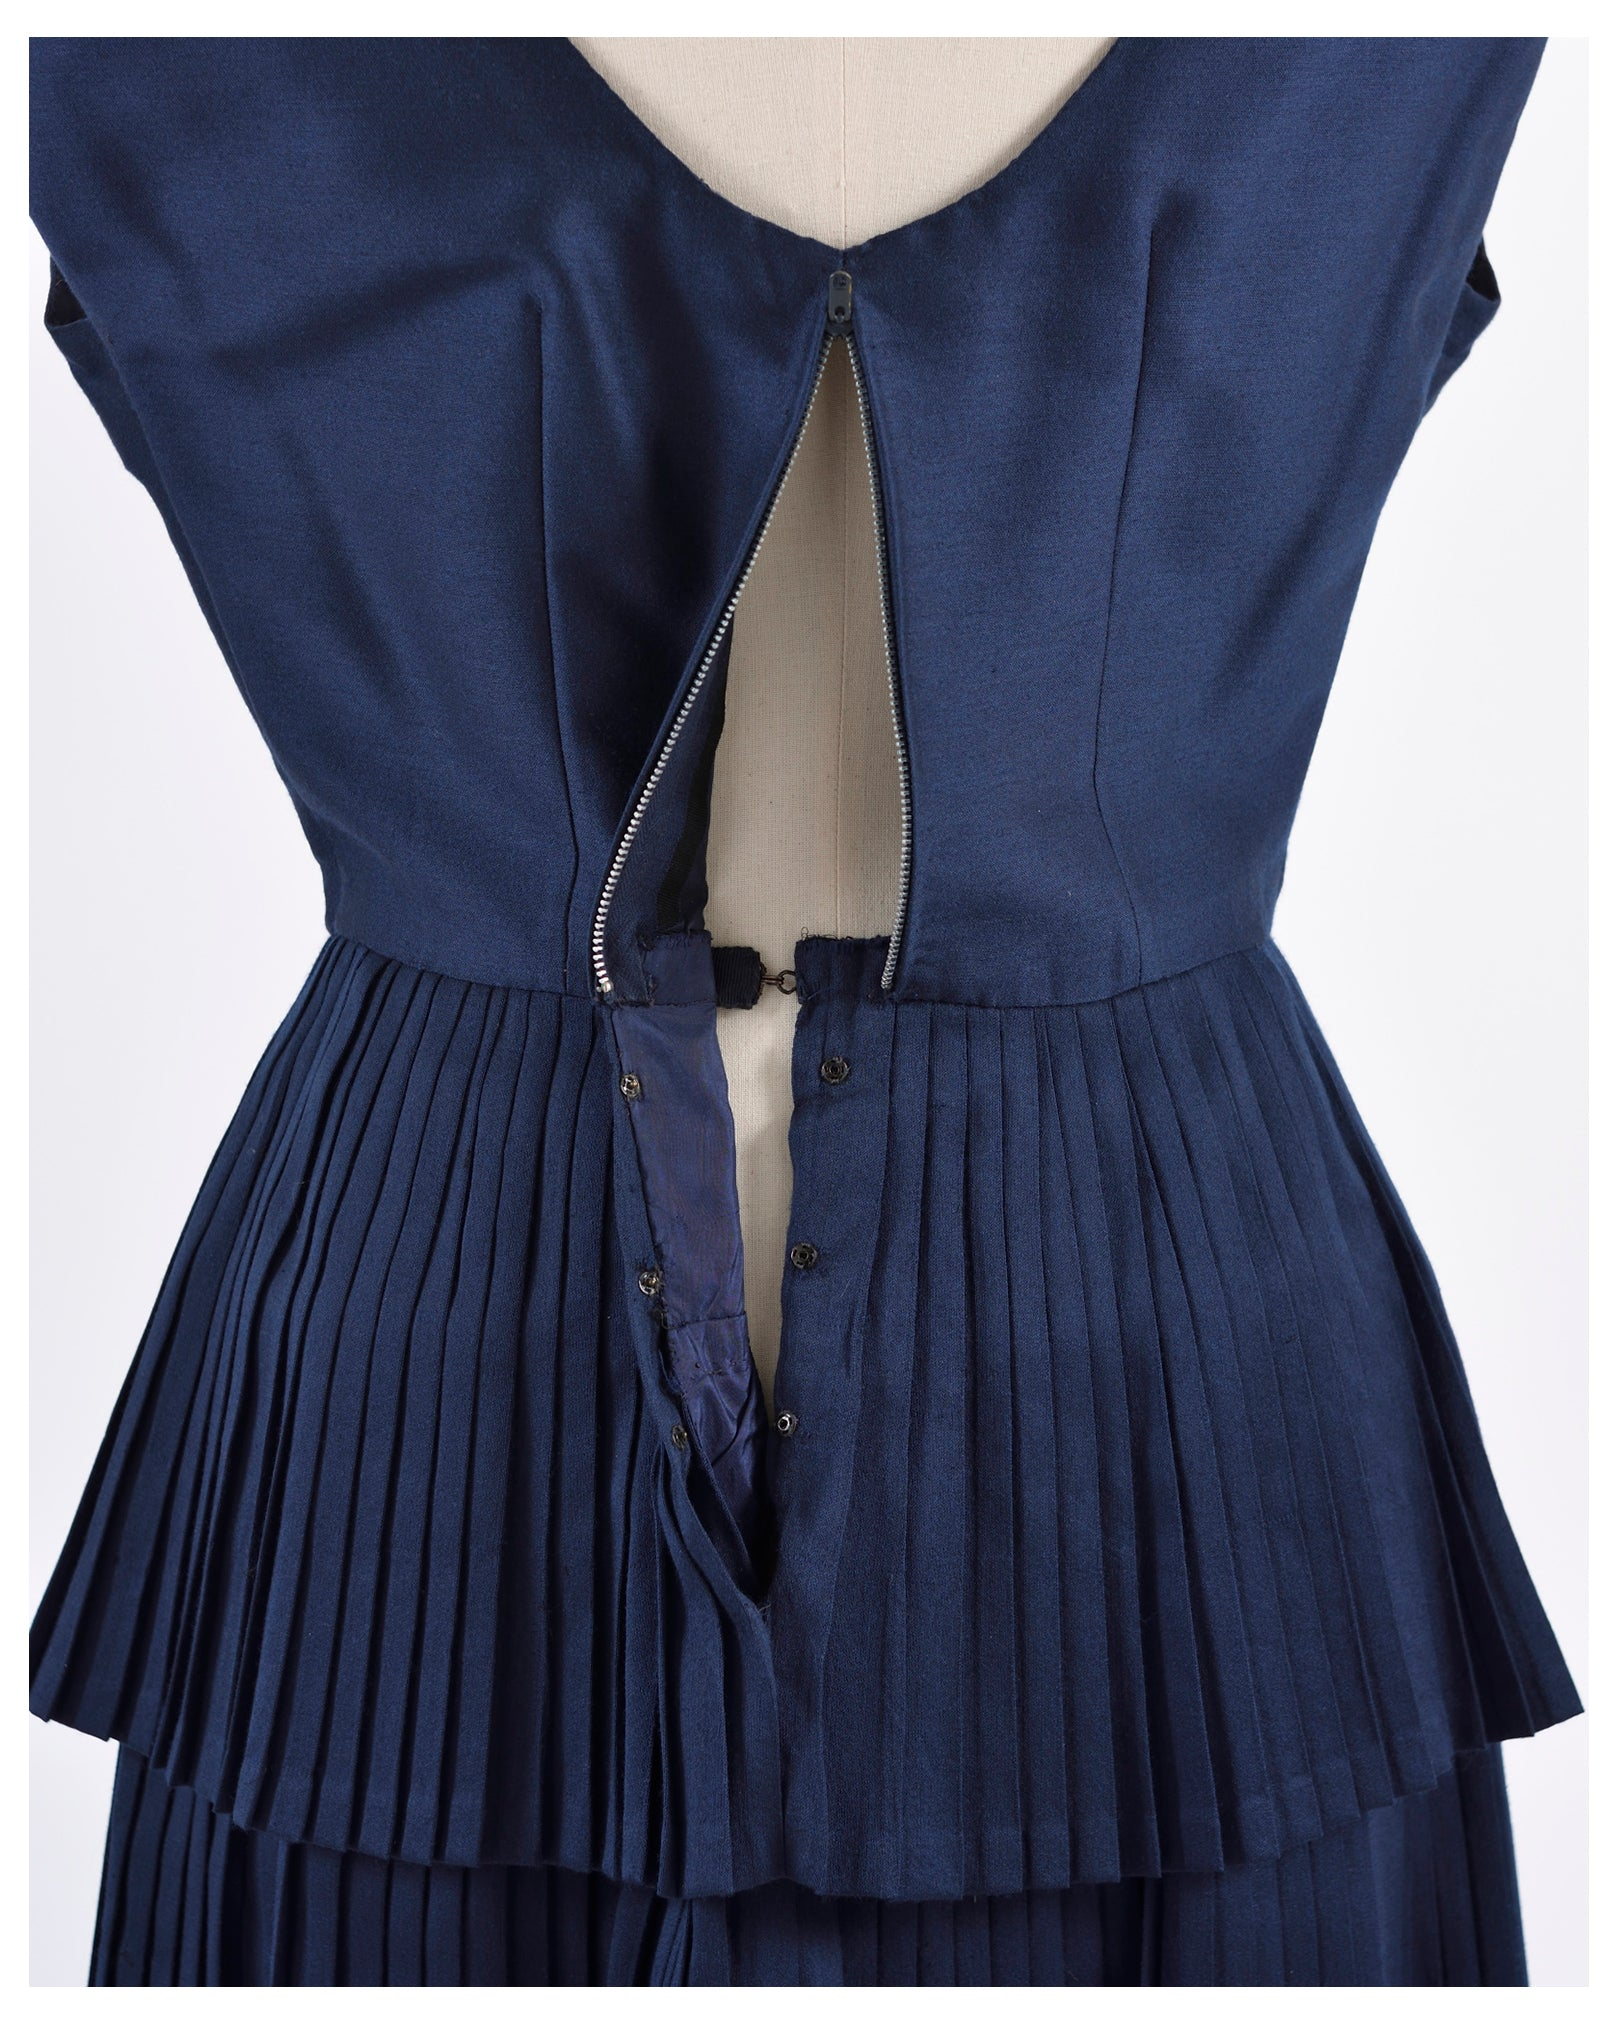 Vintage 1950s Navy Blue Cocktail Dress-Cavalli e Nastri